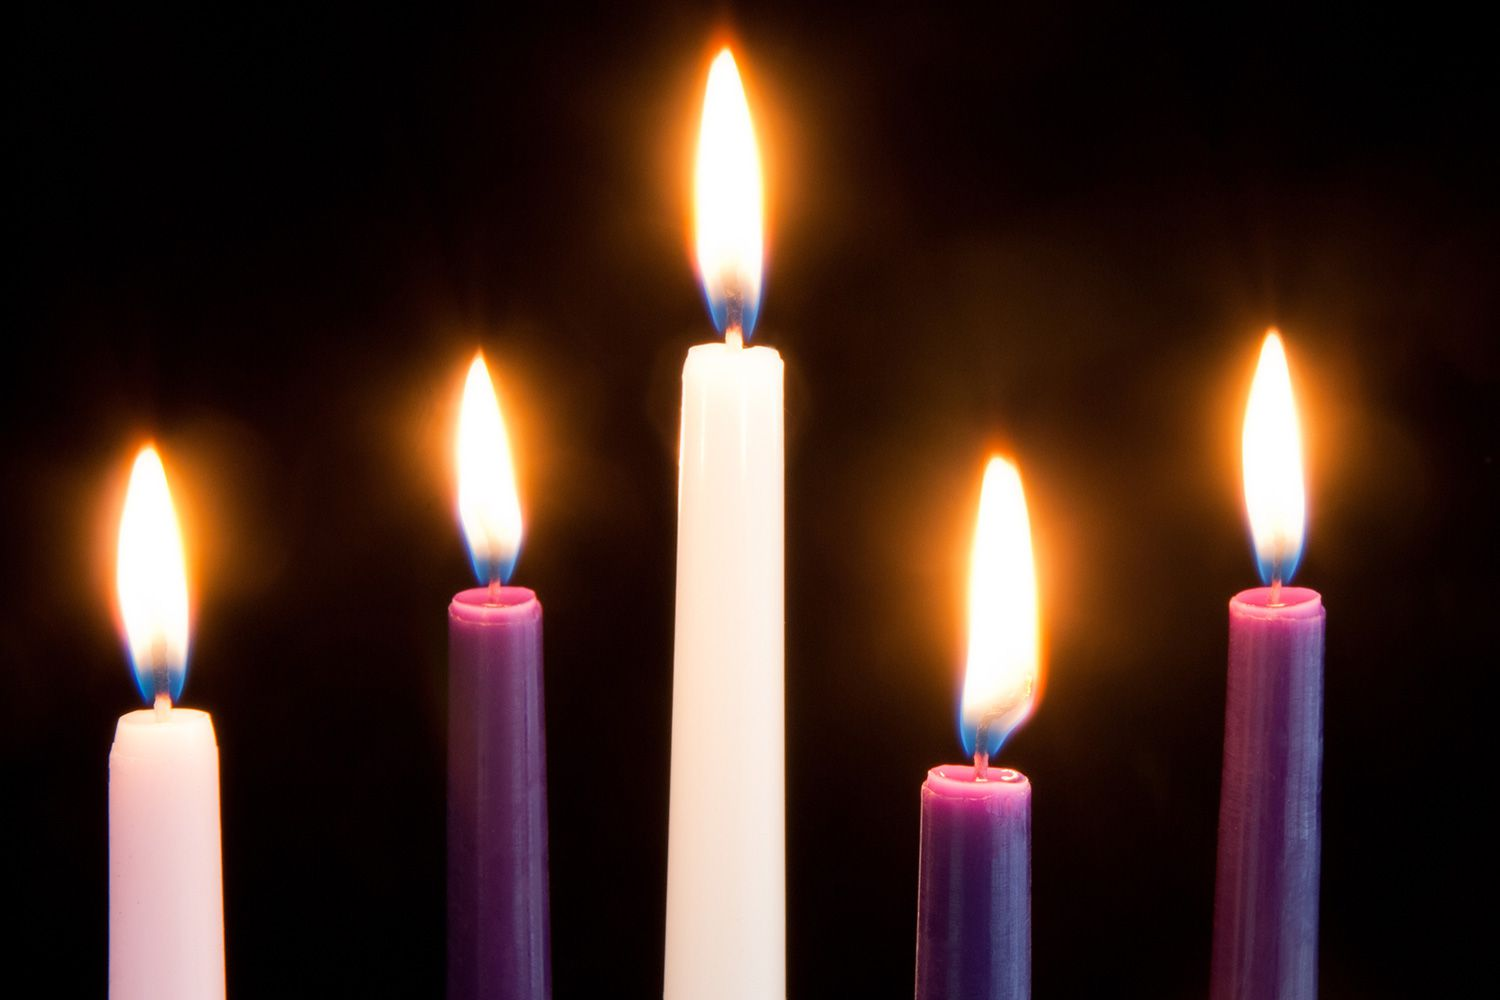 The advent candle colors are packed with rich meaning buycottarizona Image collections